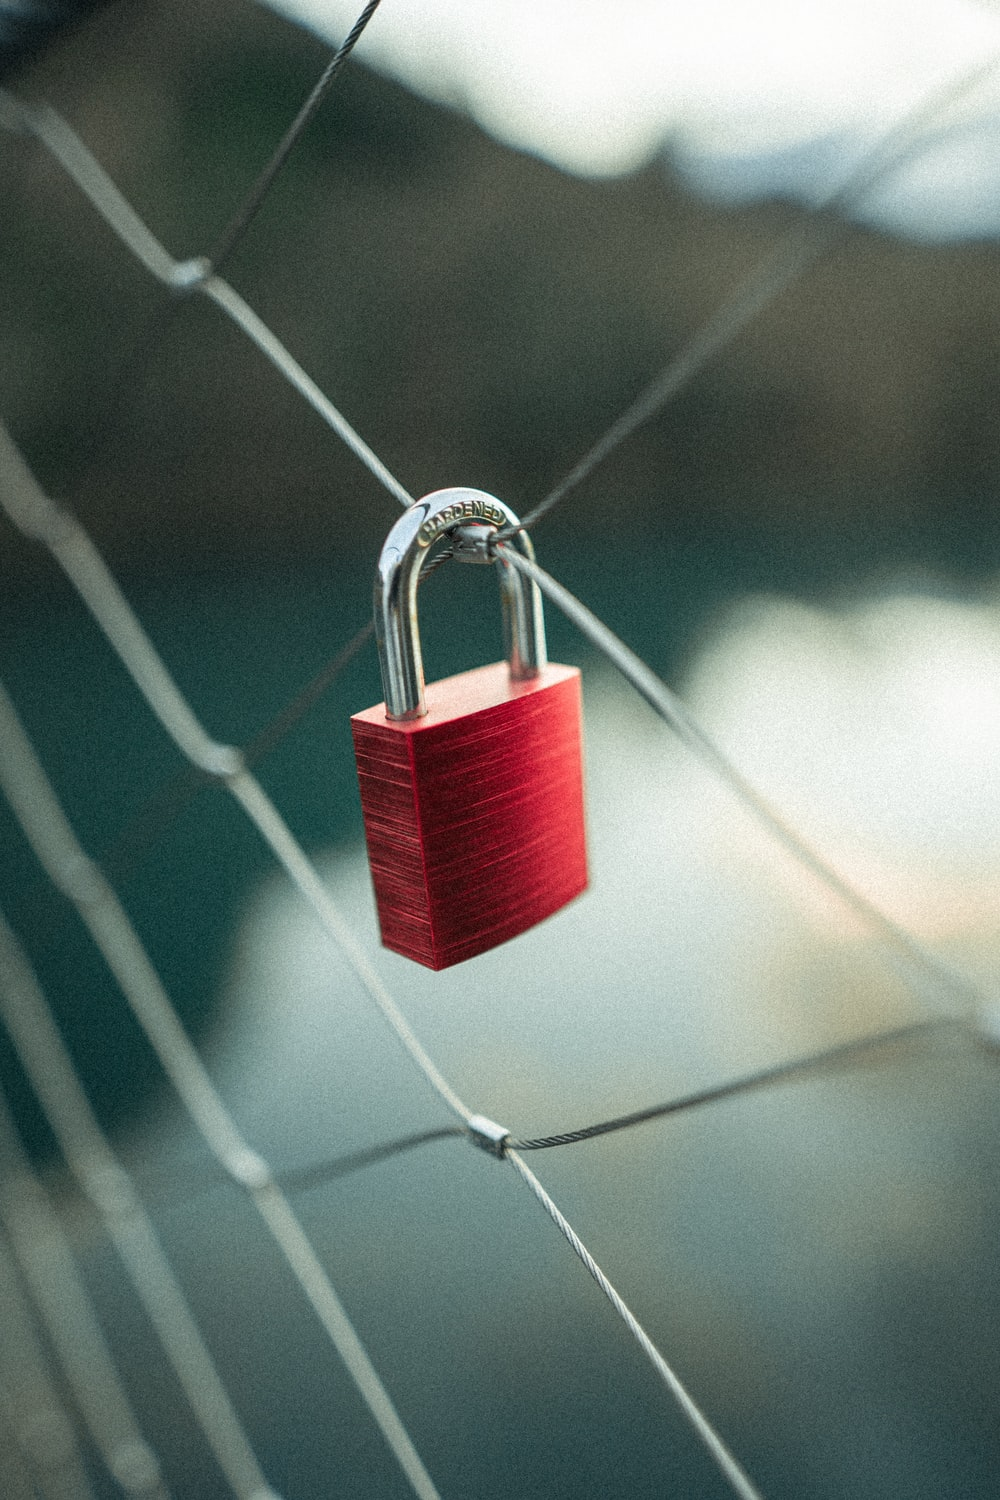 red padlock on gray wire fence